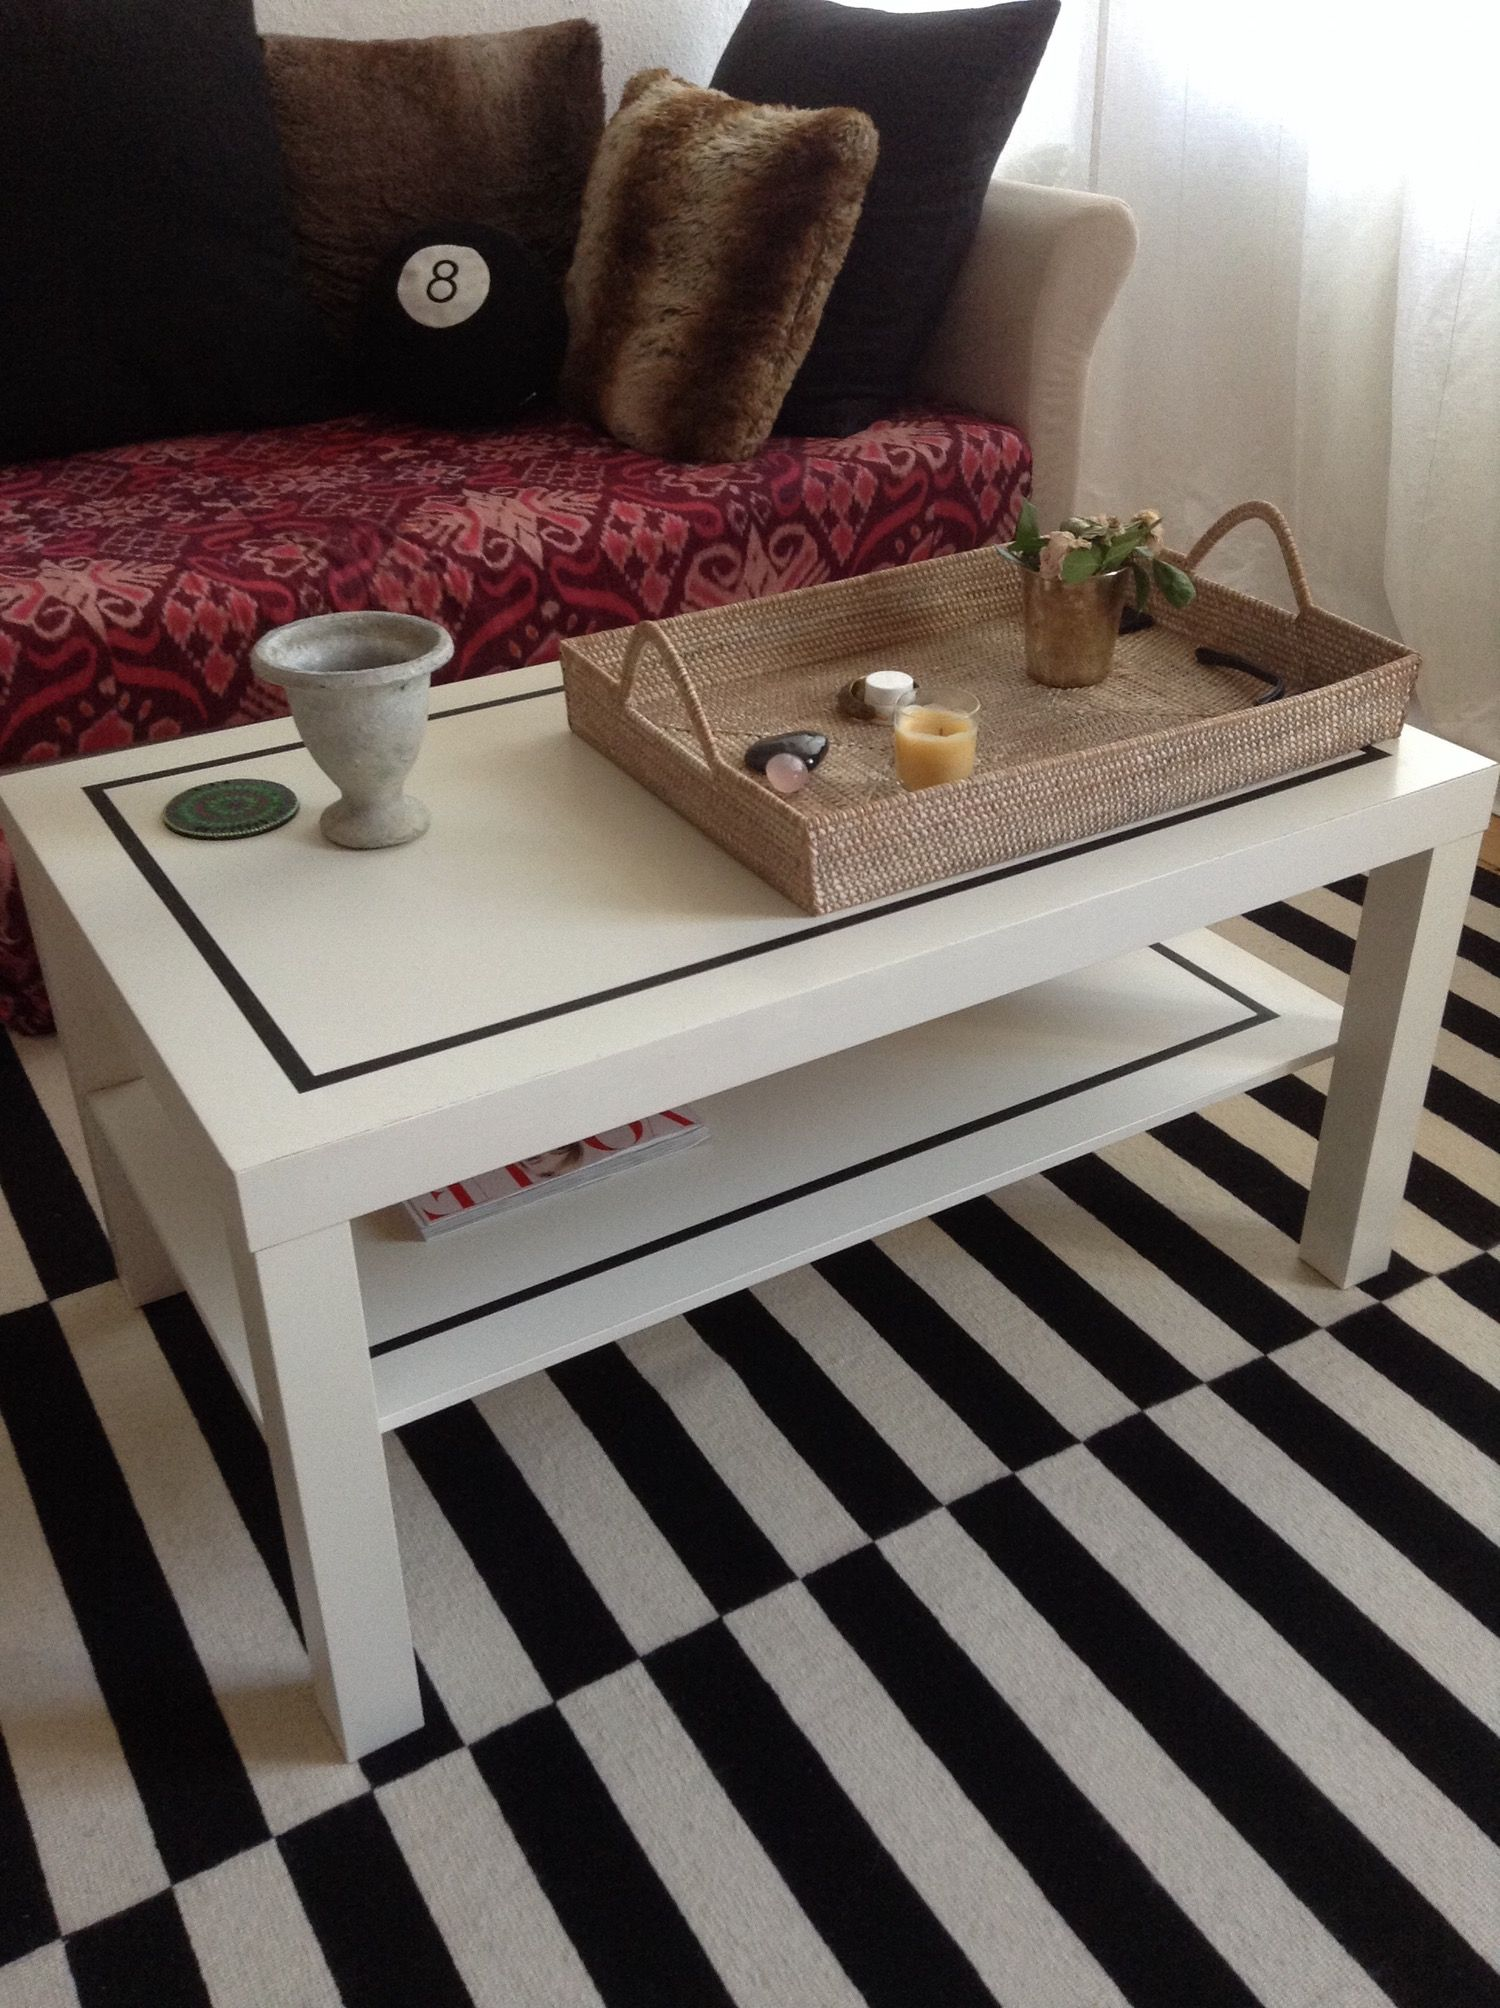 Ikea Lack Upgrade A Simple Stylish Diy Ikea Coffee Table Upgrade Home And Garden